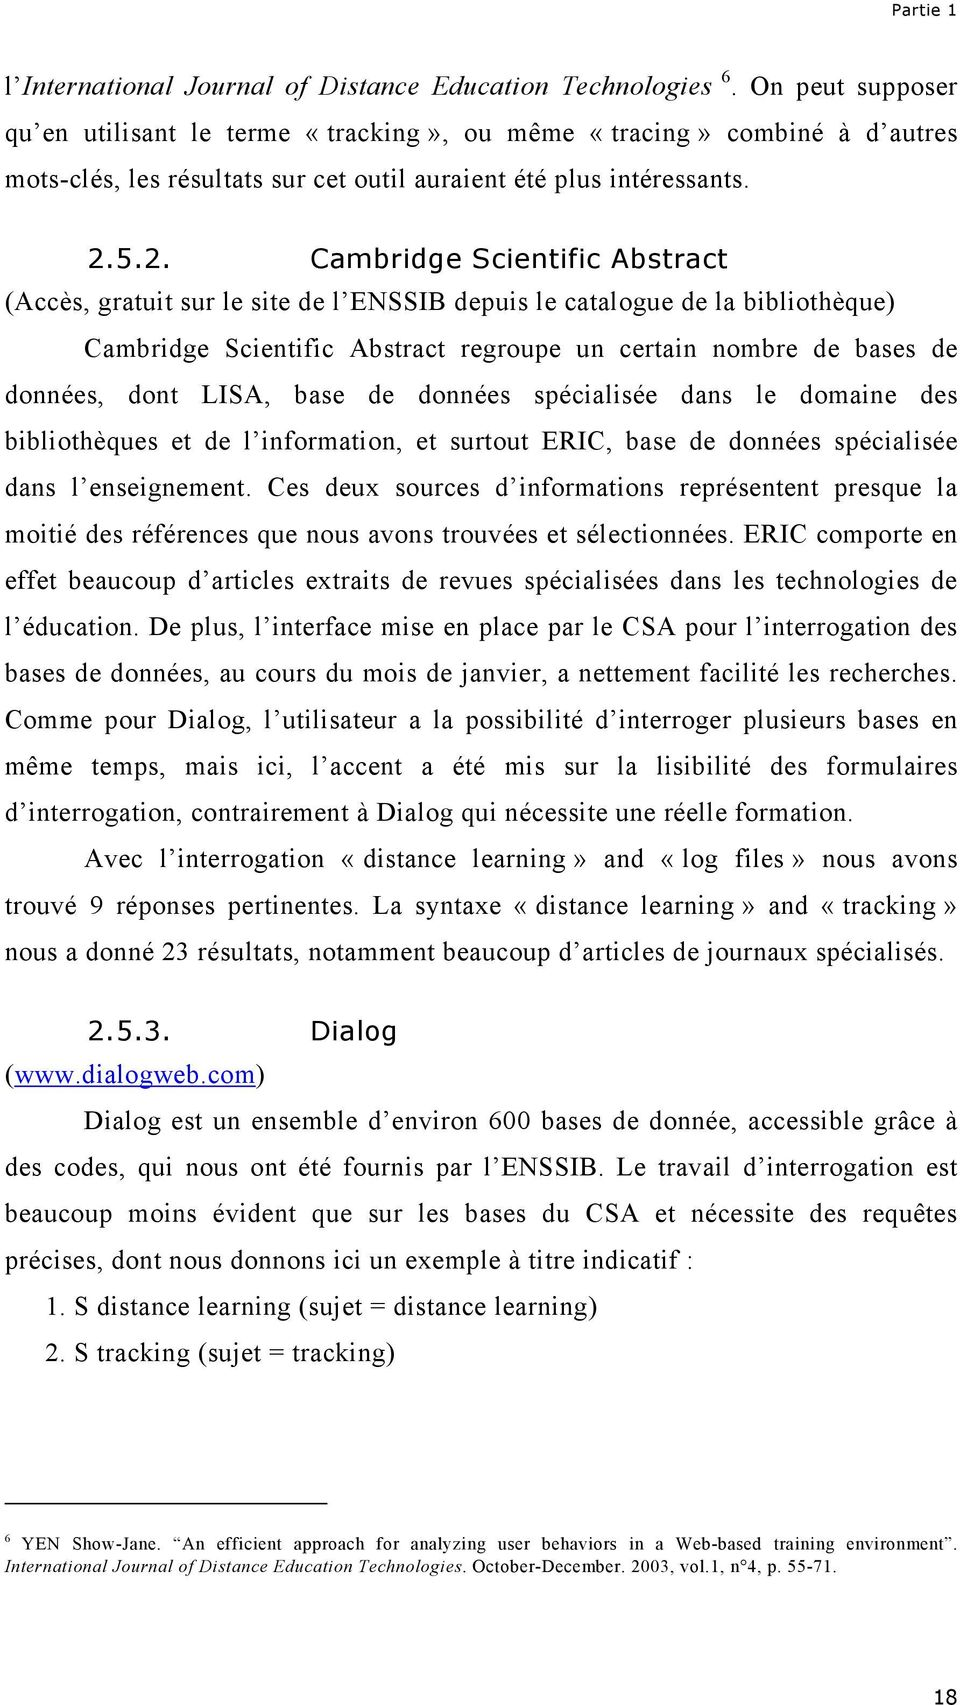 5.2. Cambridge Scientific Abstract (Accès, gratuit sur le site de l ENSSIB depuis le catalogue de la bibliothèque) Cambridge Scientific Abstract regroupe un certain nombre de bases de données, dont